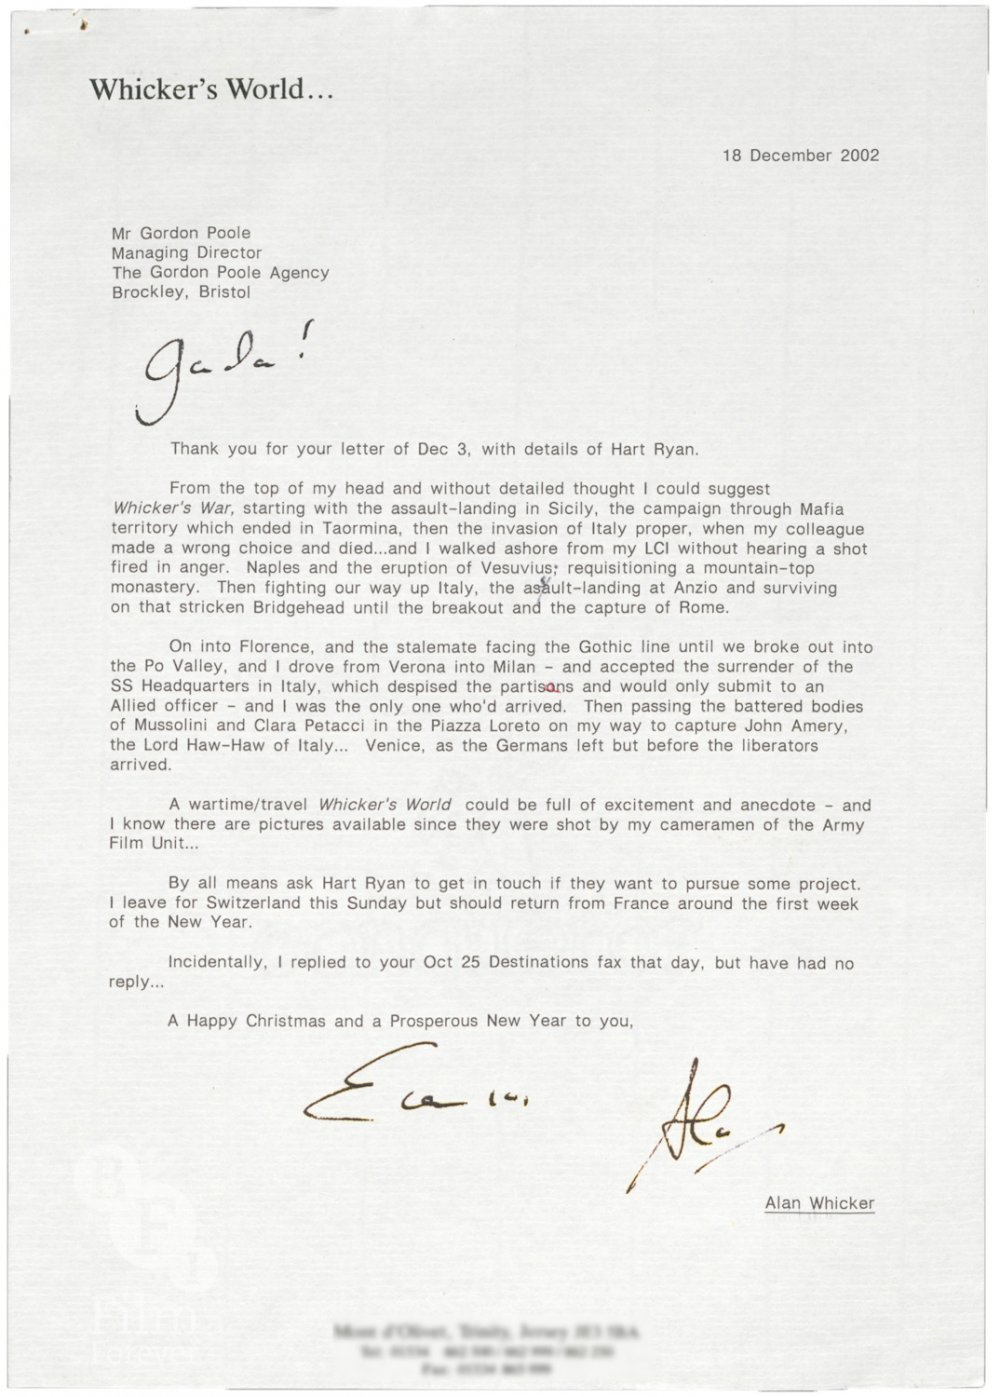 Letter from Alan Whicker to Gordon Poole regarding Whicker's War (2004), 18 December 2002